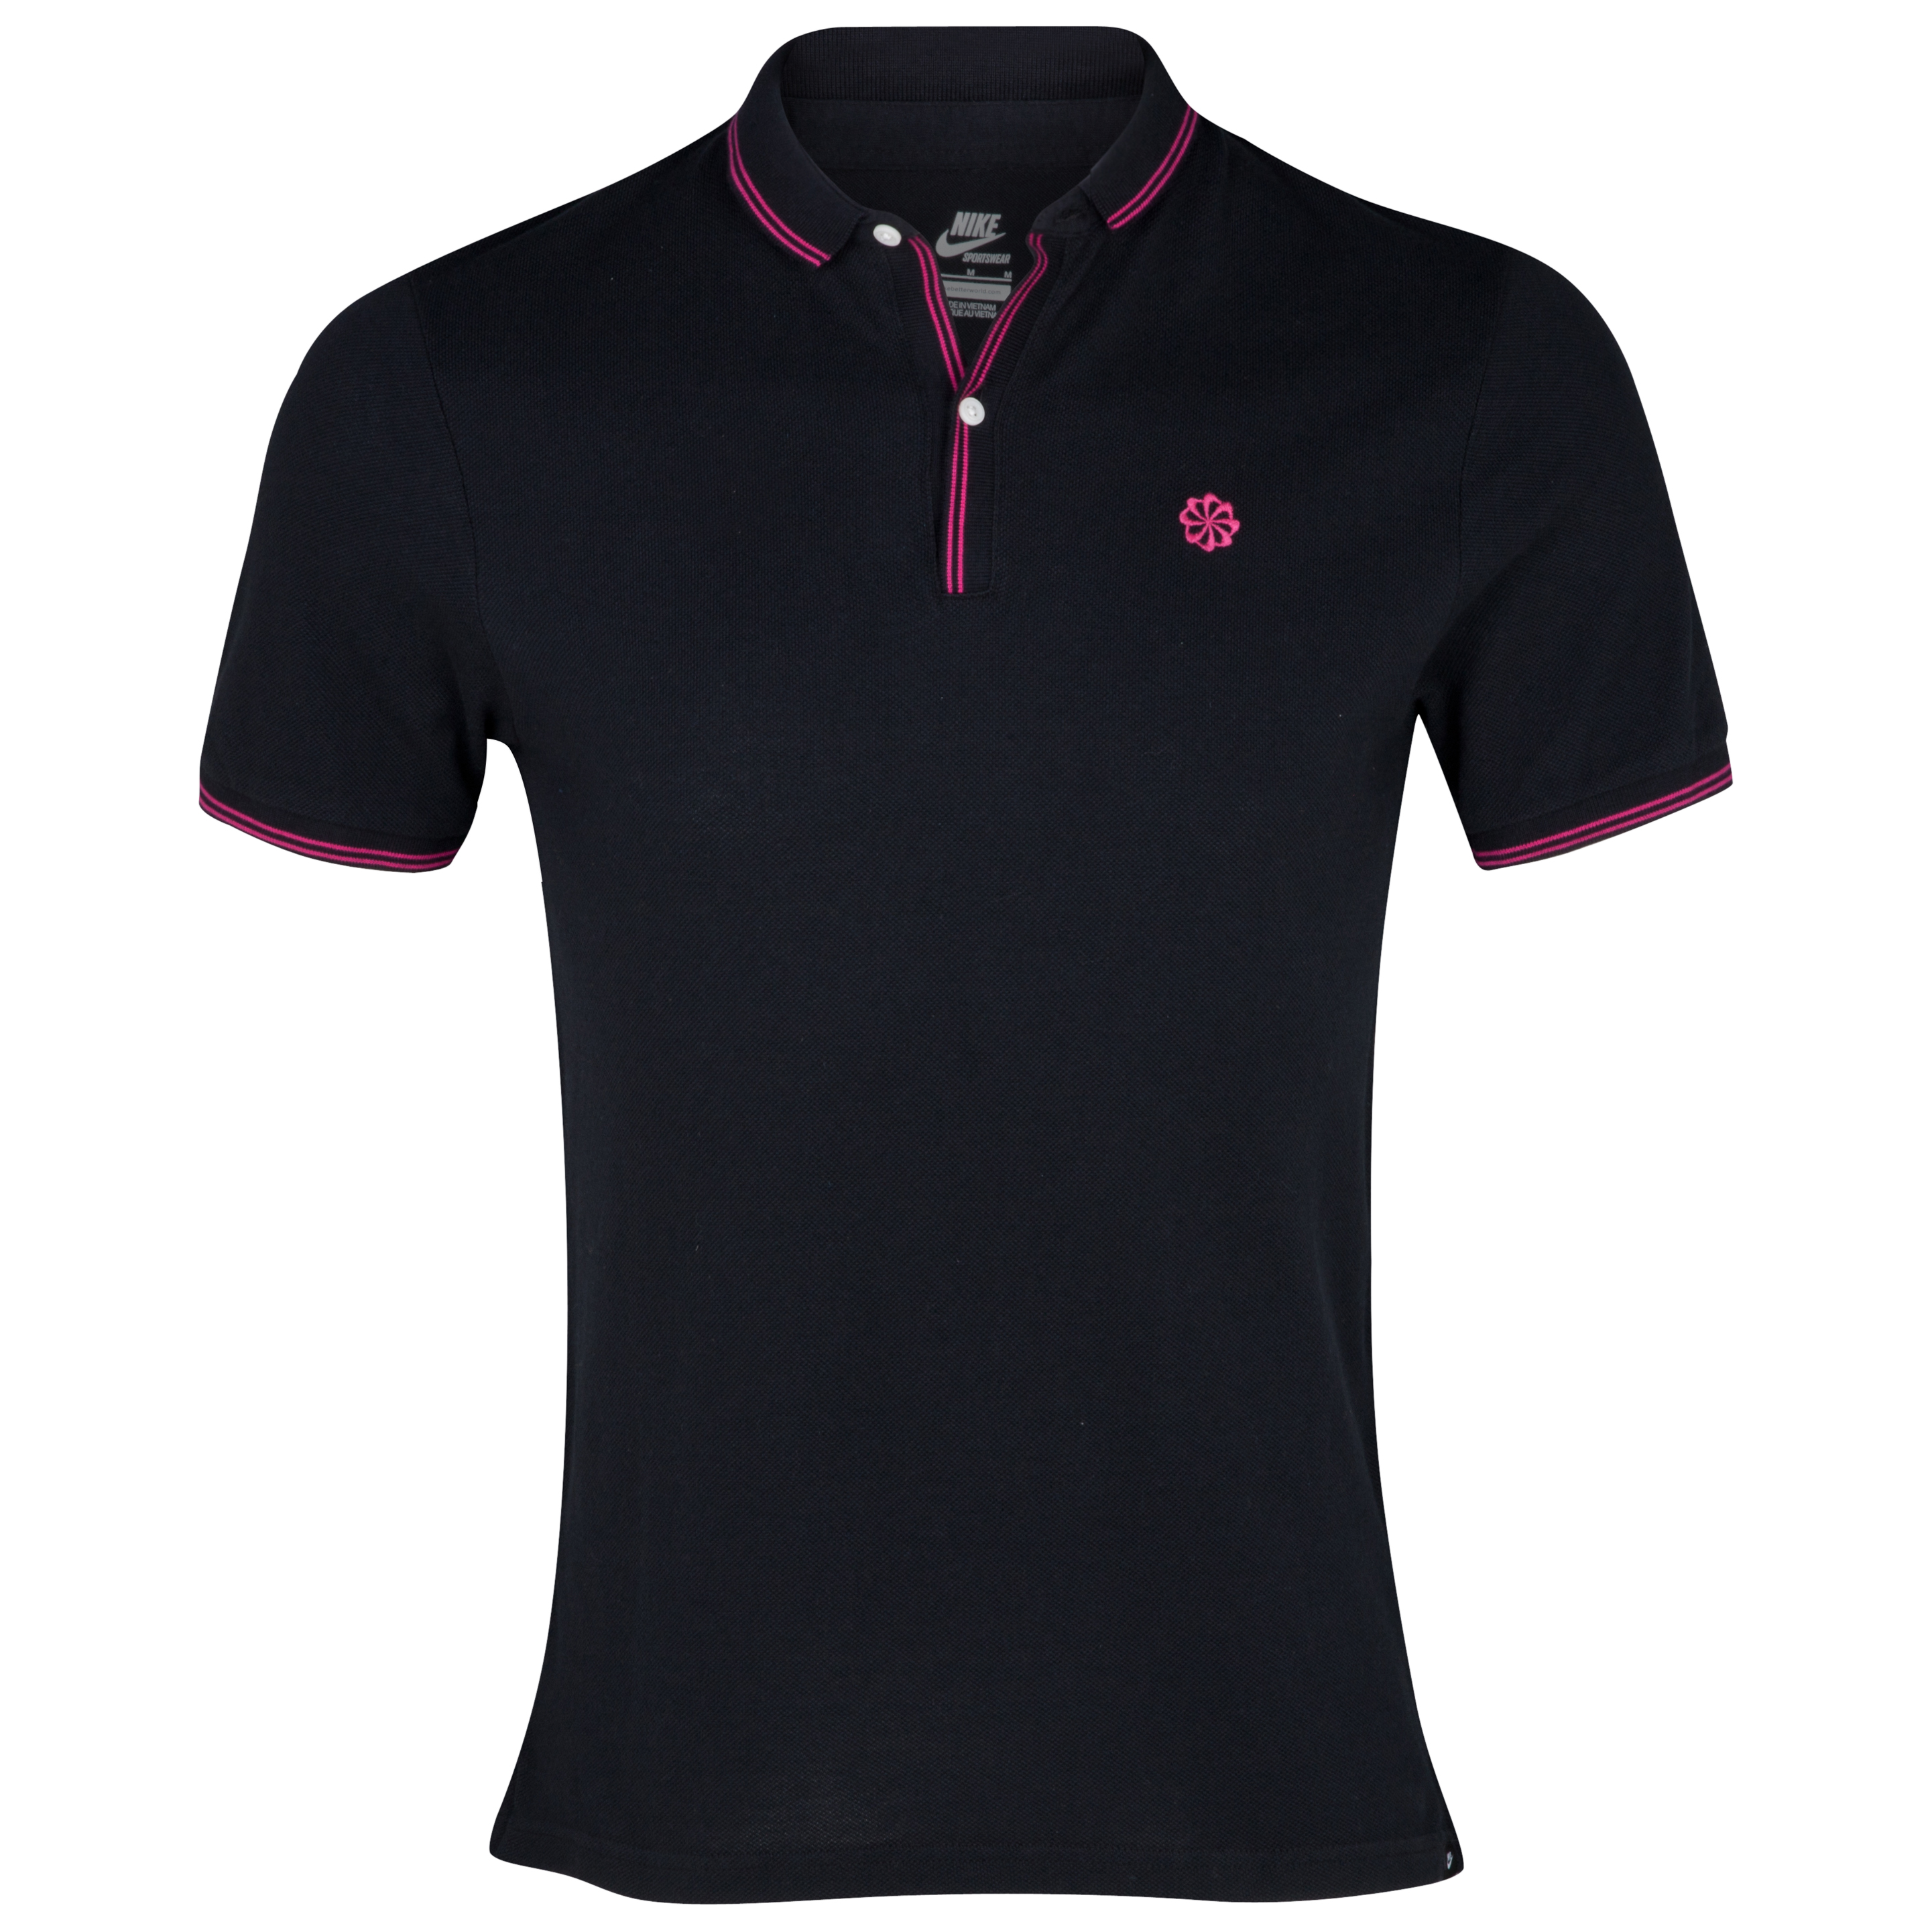 Nike Slim Collar Polo - Black/Fireberry